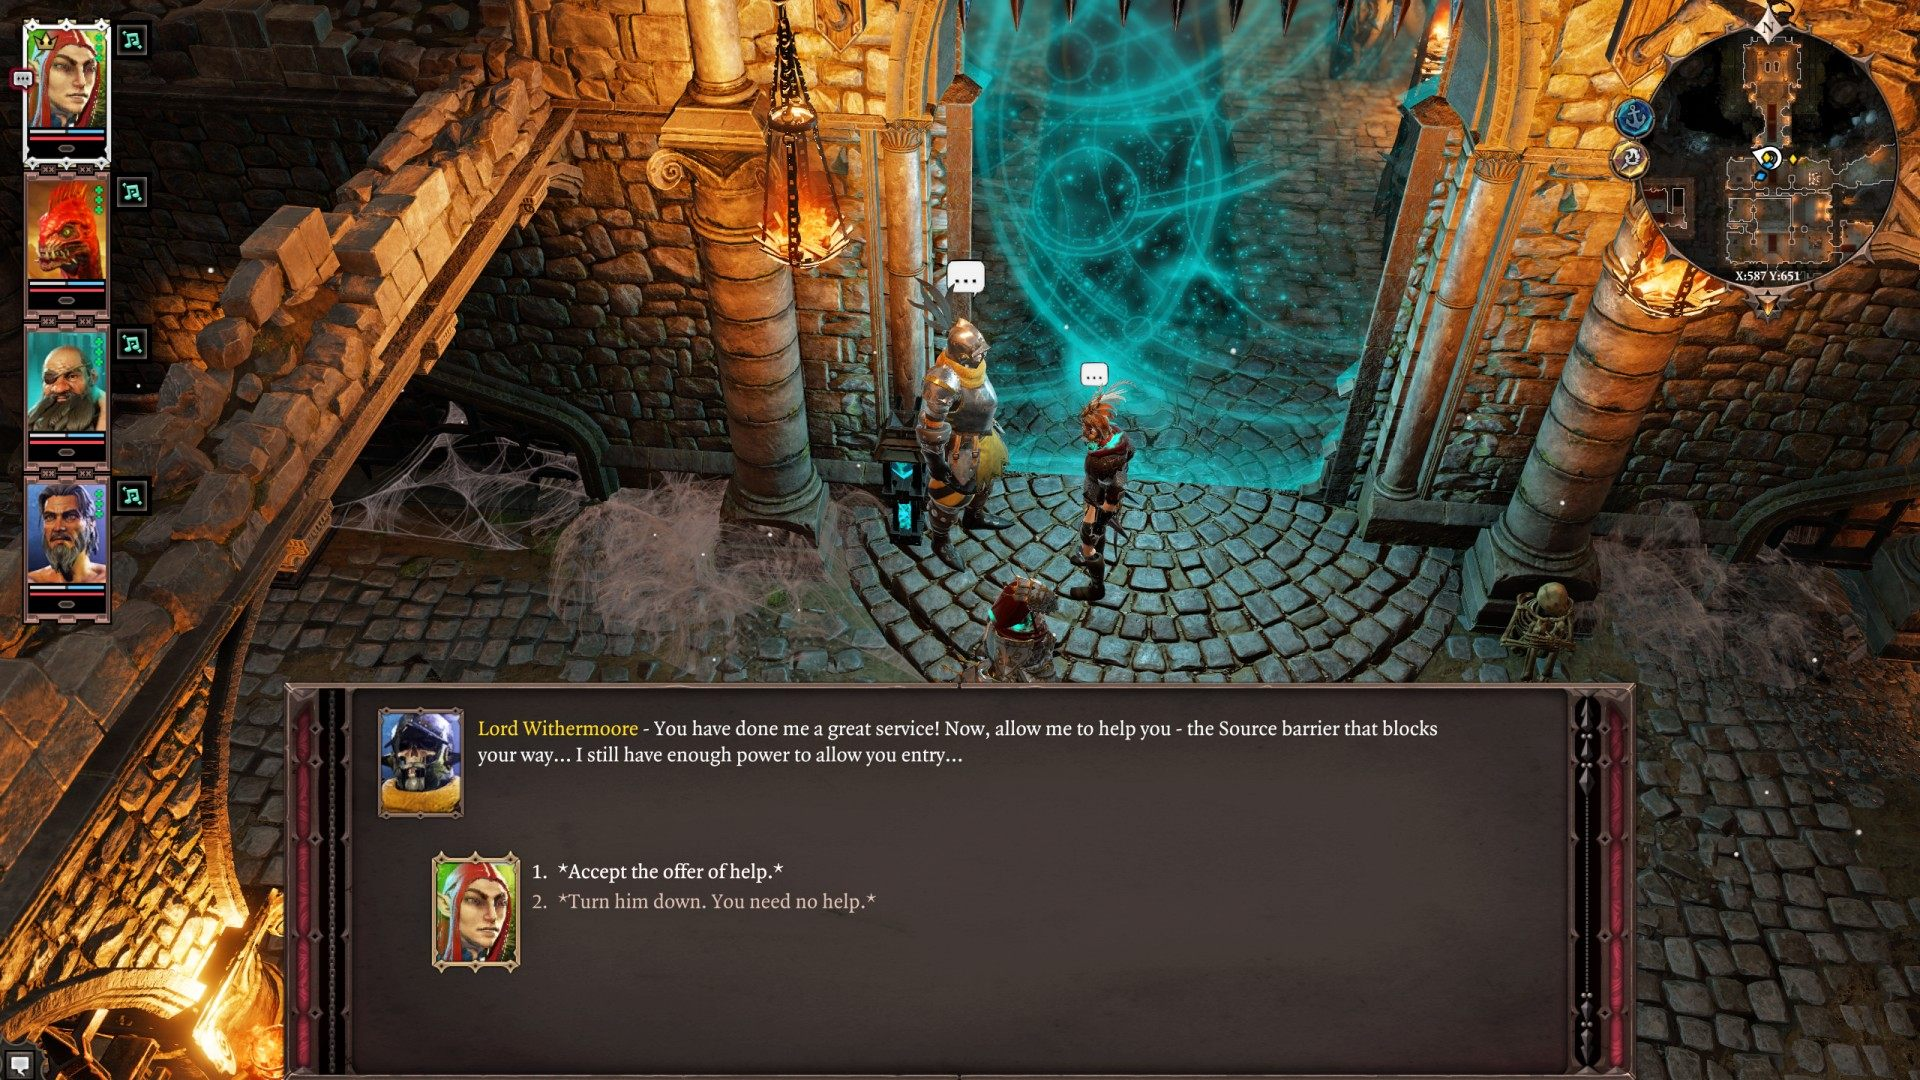 Withermoores Soul Jar Divinity Original Sin 2 Quest